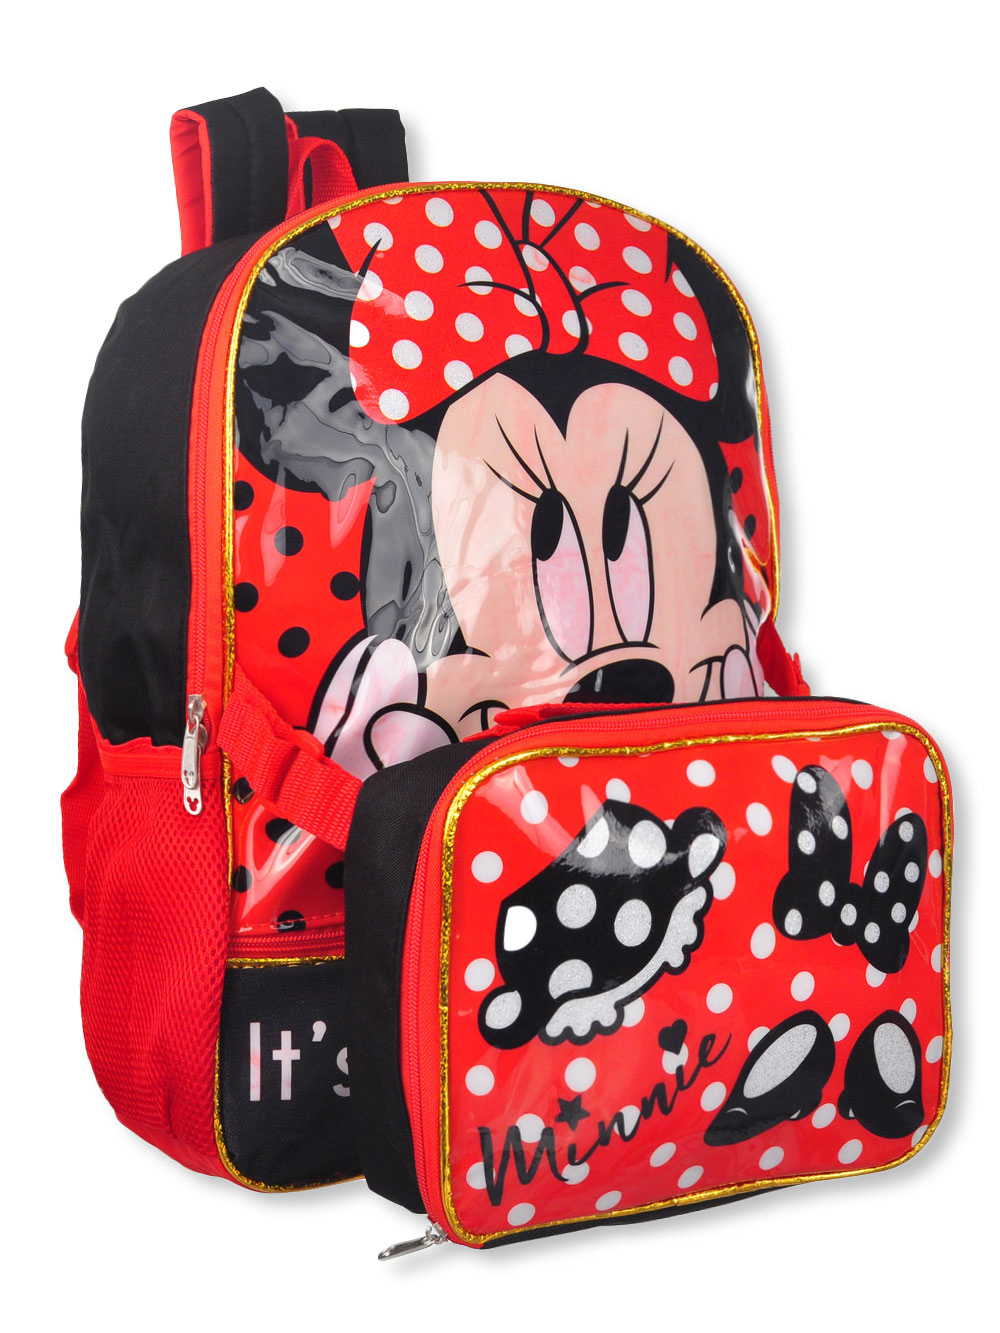 b0706109d7d Disney Minnie Mouse Backpack with Insulated Lunchbox